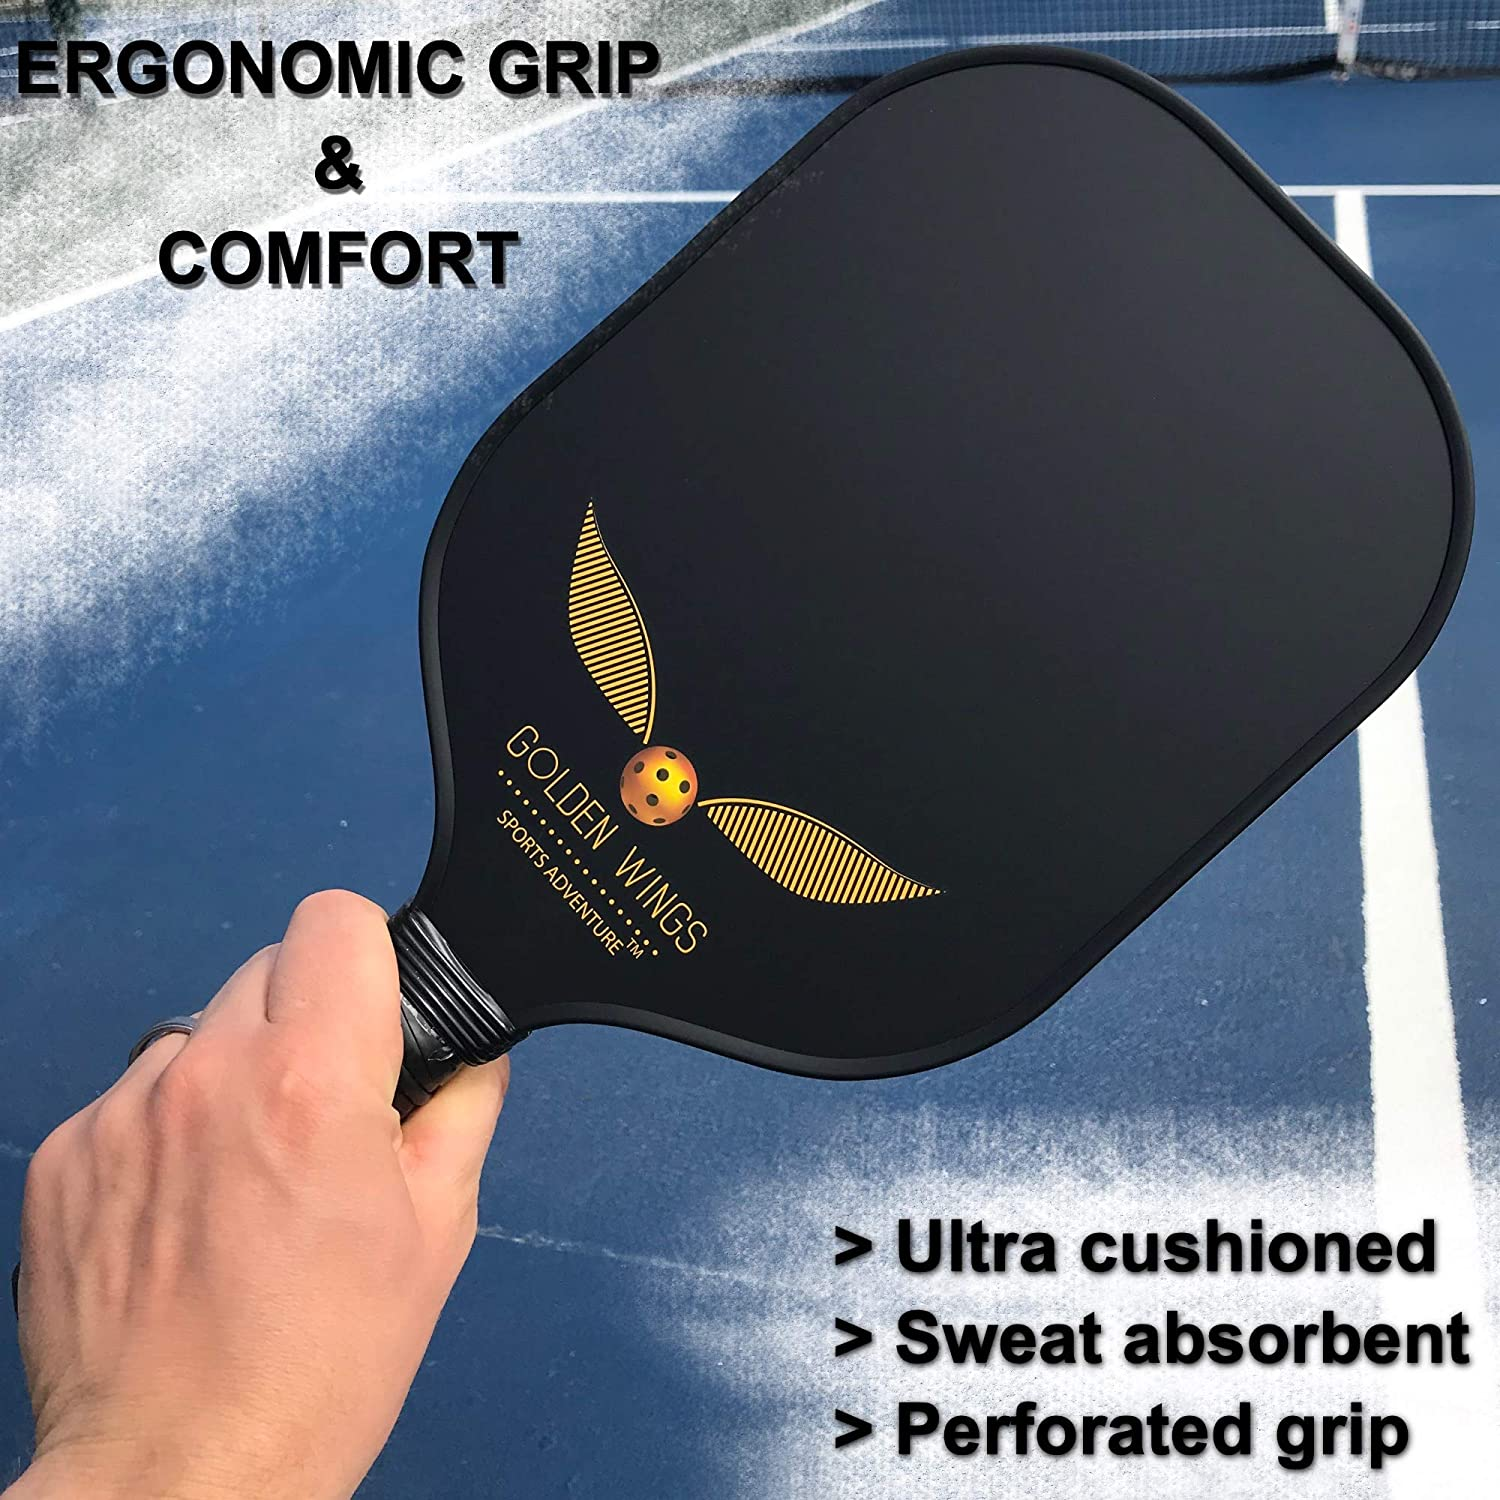 Amazon.com : Pickleball Paddle Set Of 2 - Graphite Pickleball Racket + 4 Pickle Balls - Composite Fiberglass Pickleball Paddles Bundle Honeycomb Core Pickle ...